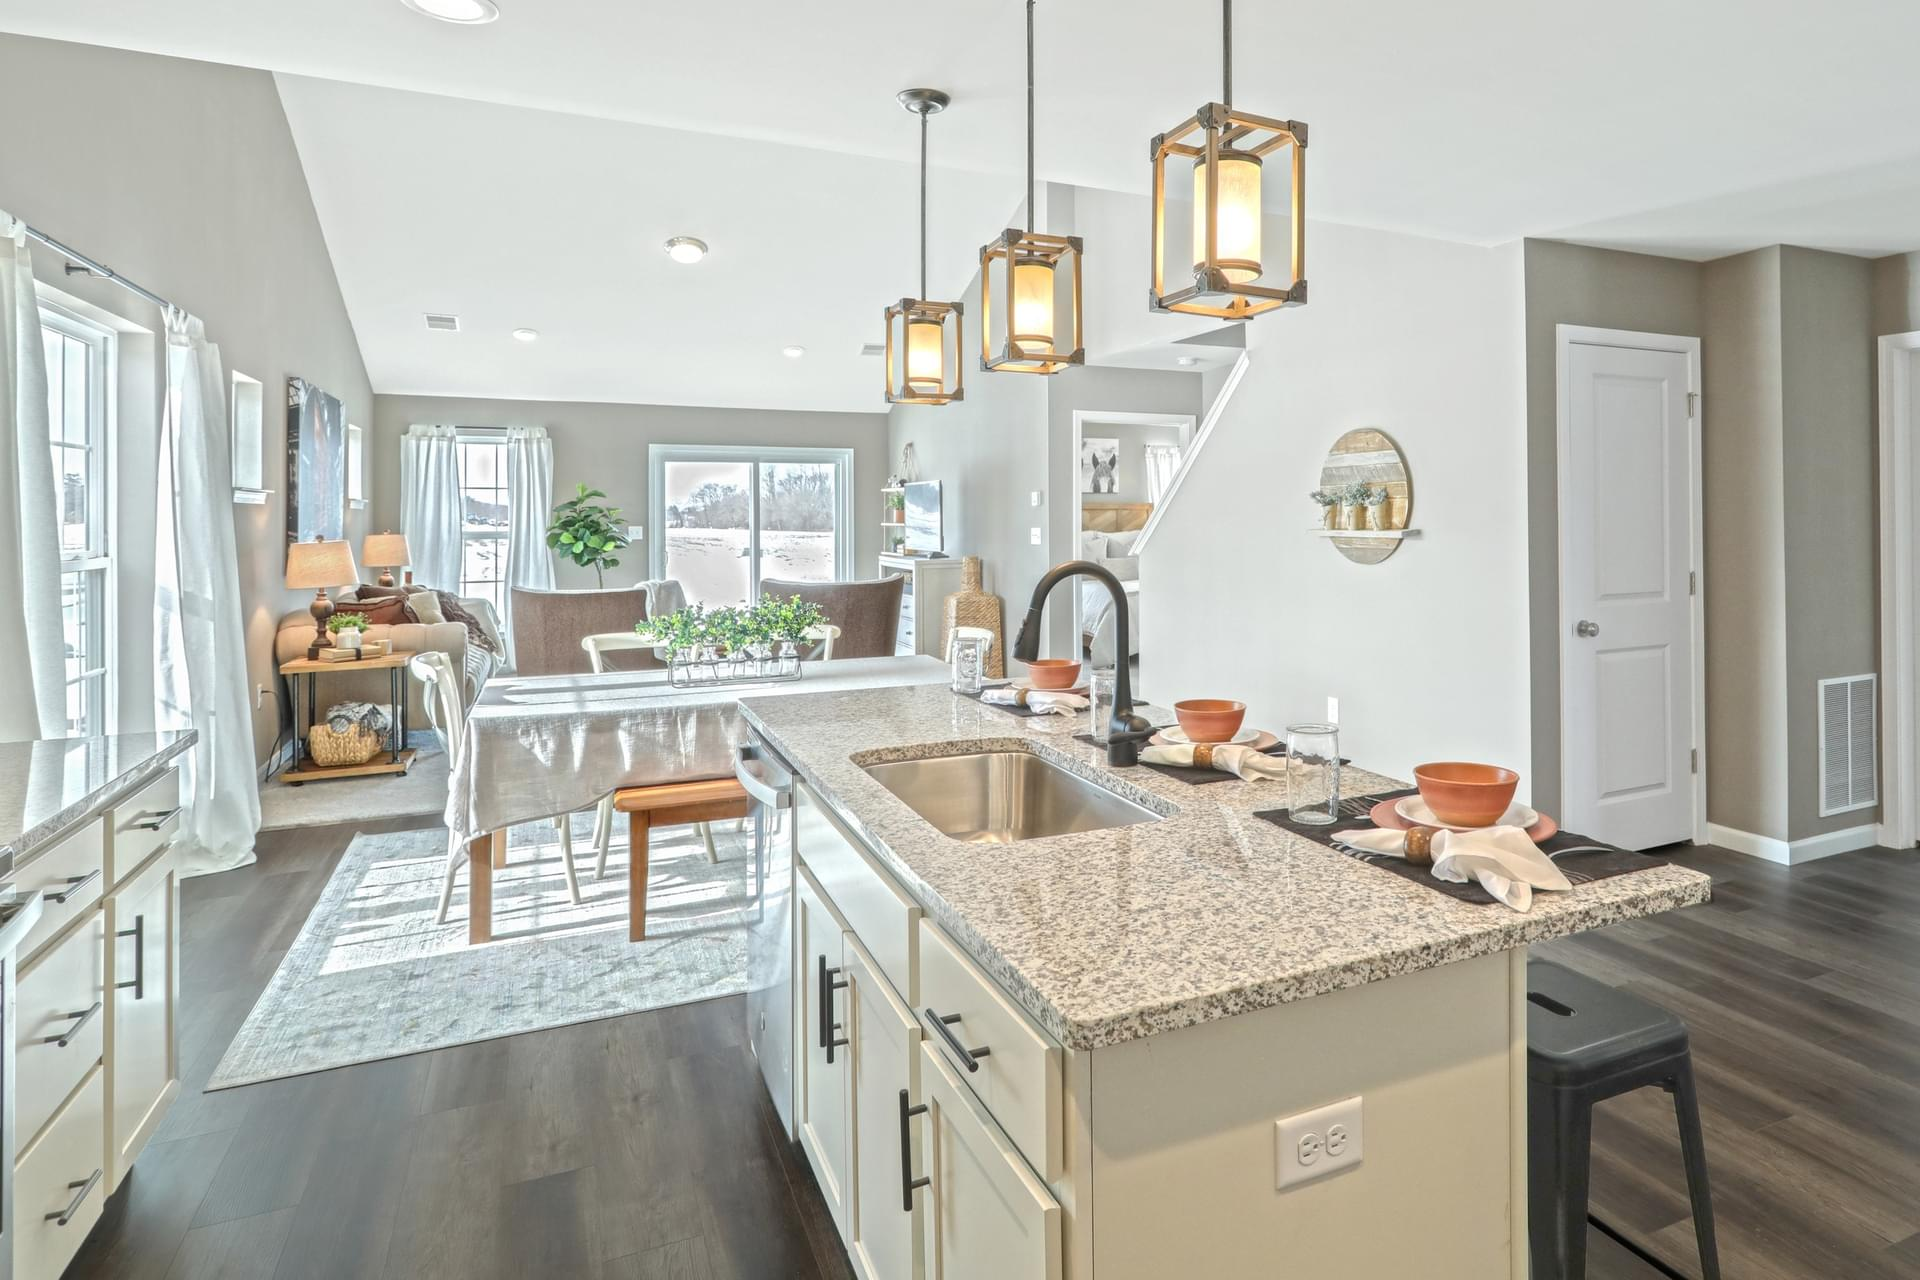 Nittany Glen Duplexes New Homes in State College, PA